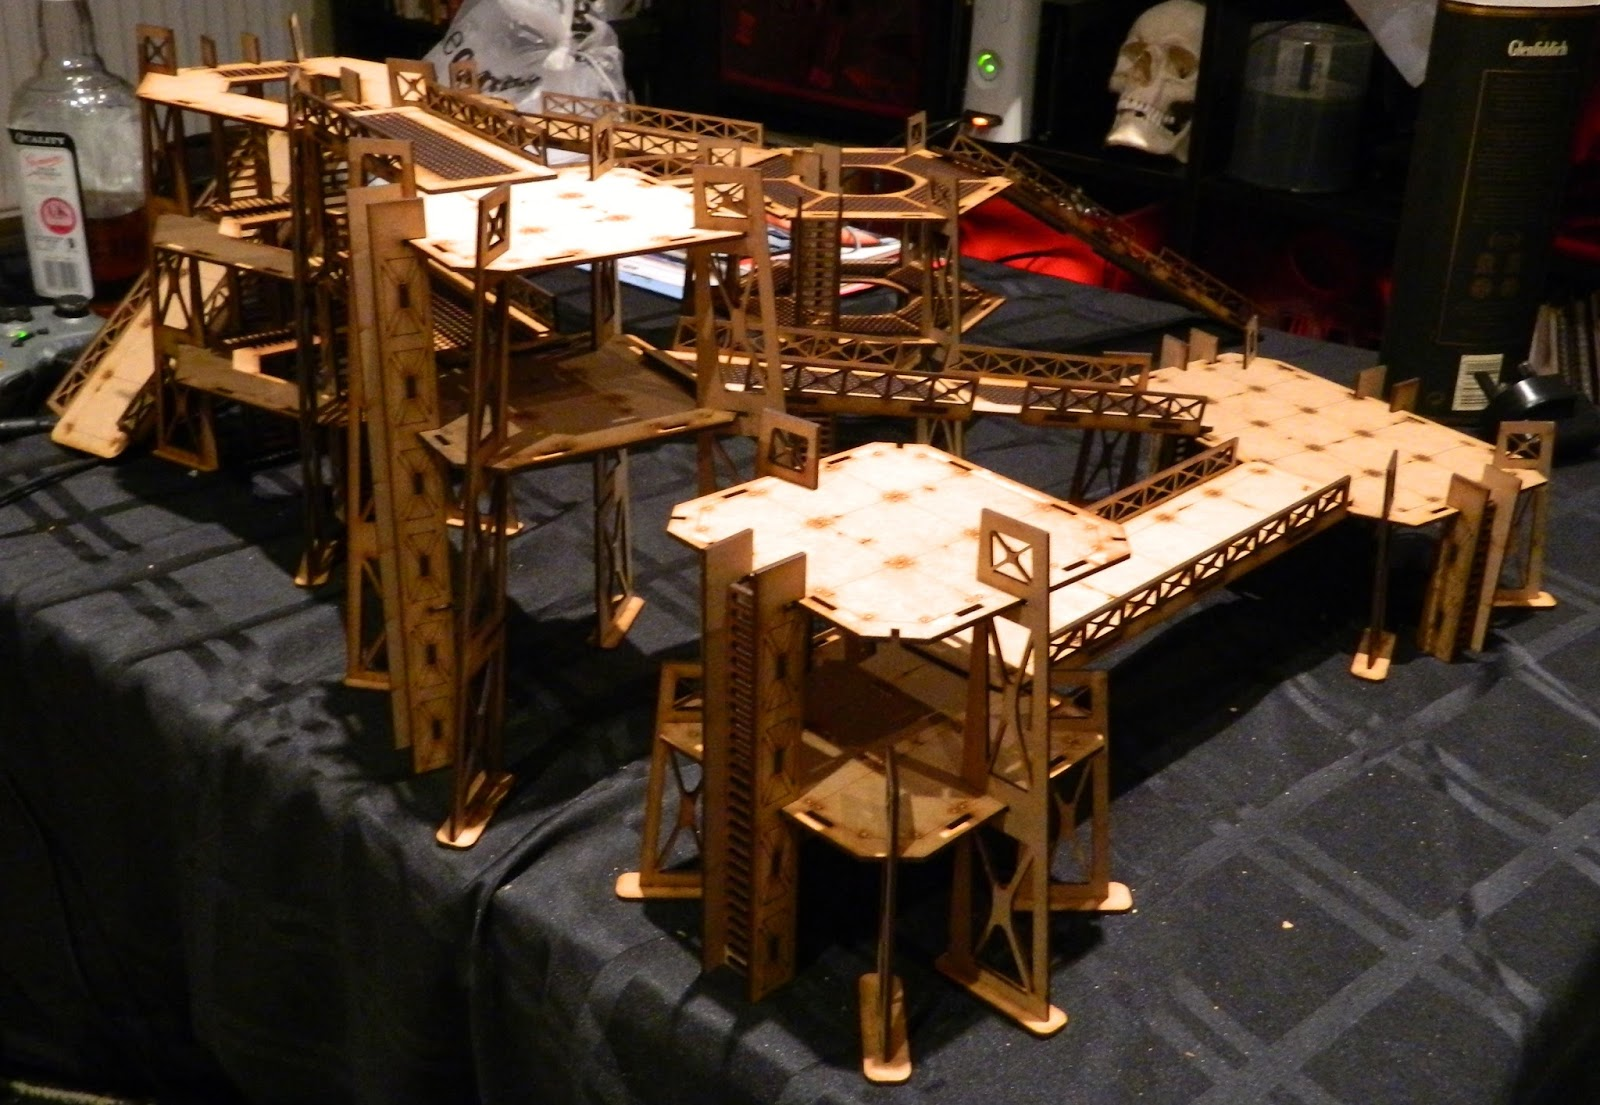 Conclave of Har: Wargaming Tournaments Industrial Terrain